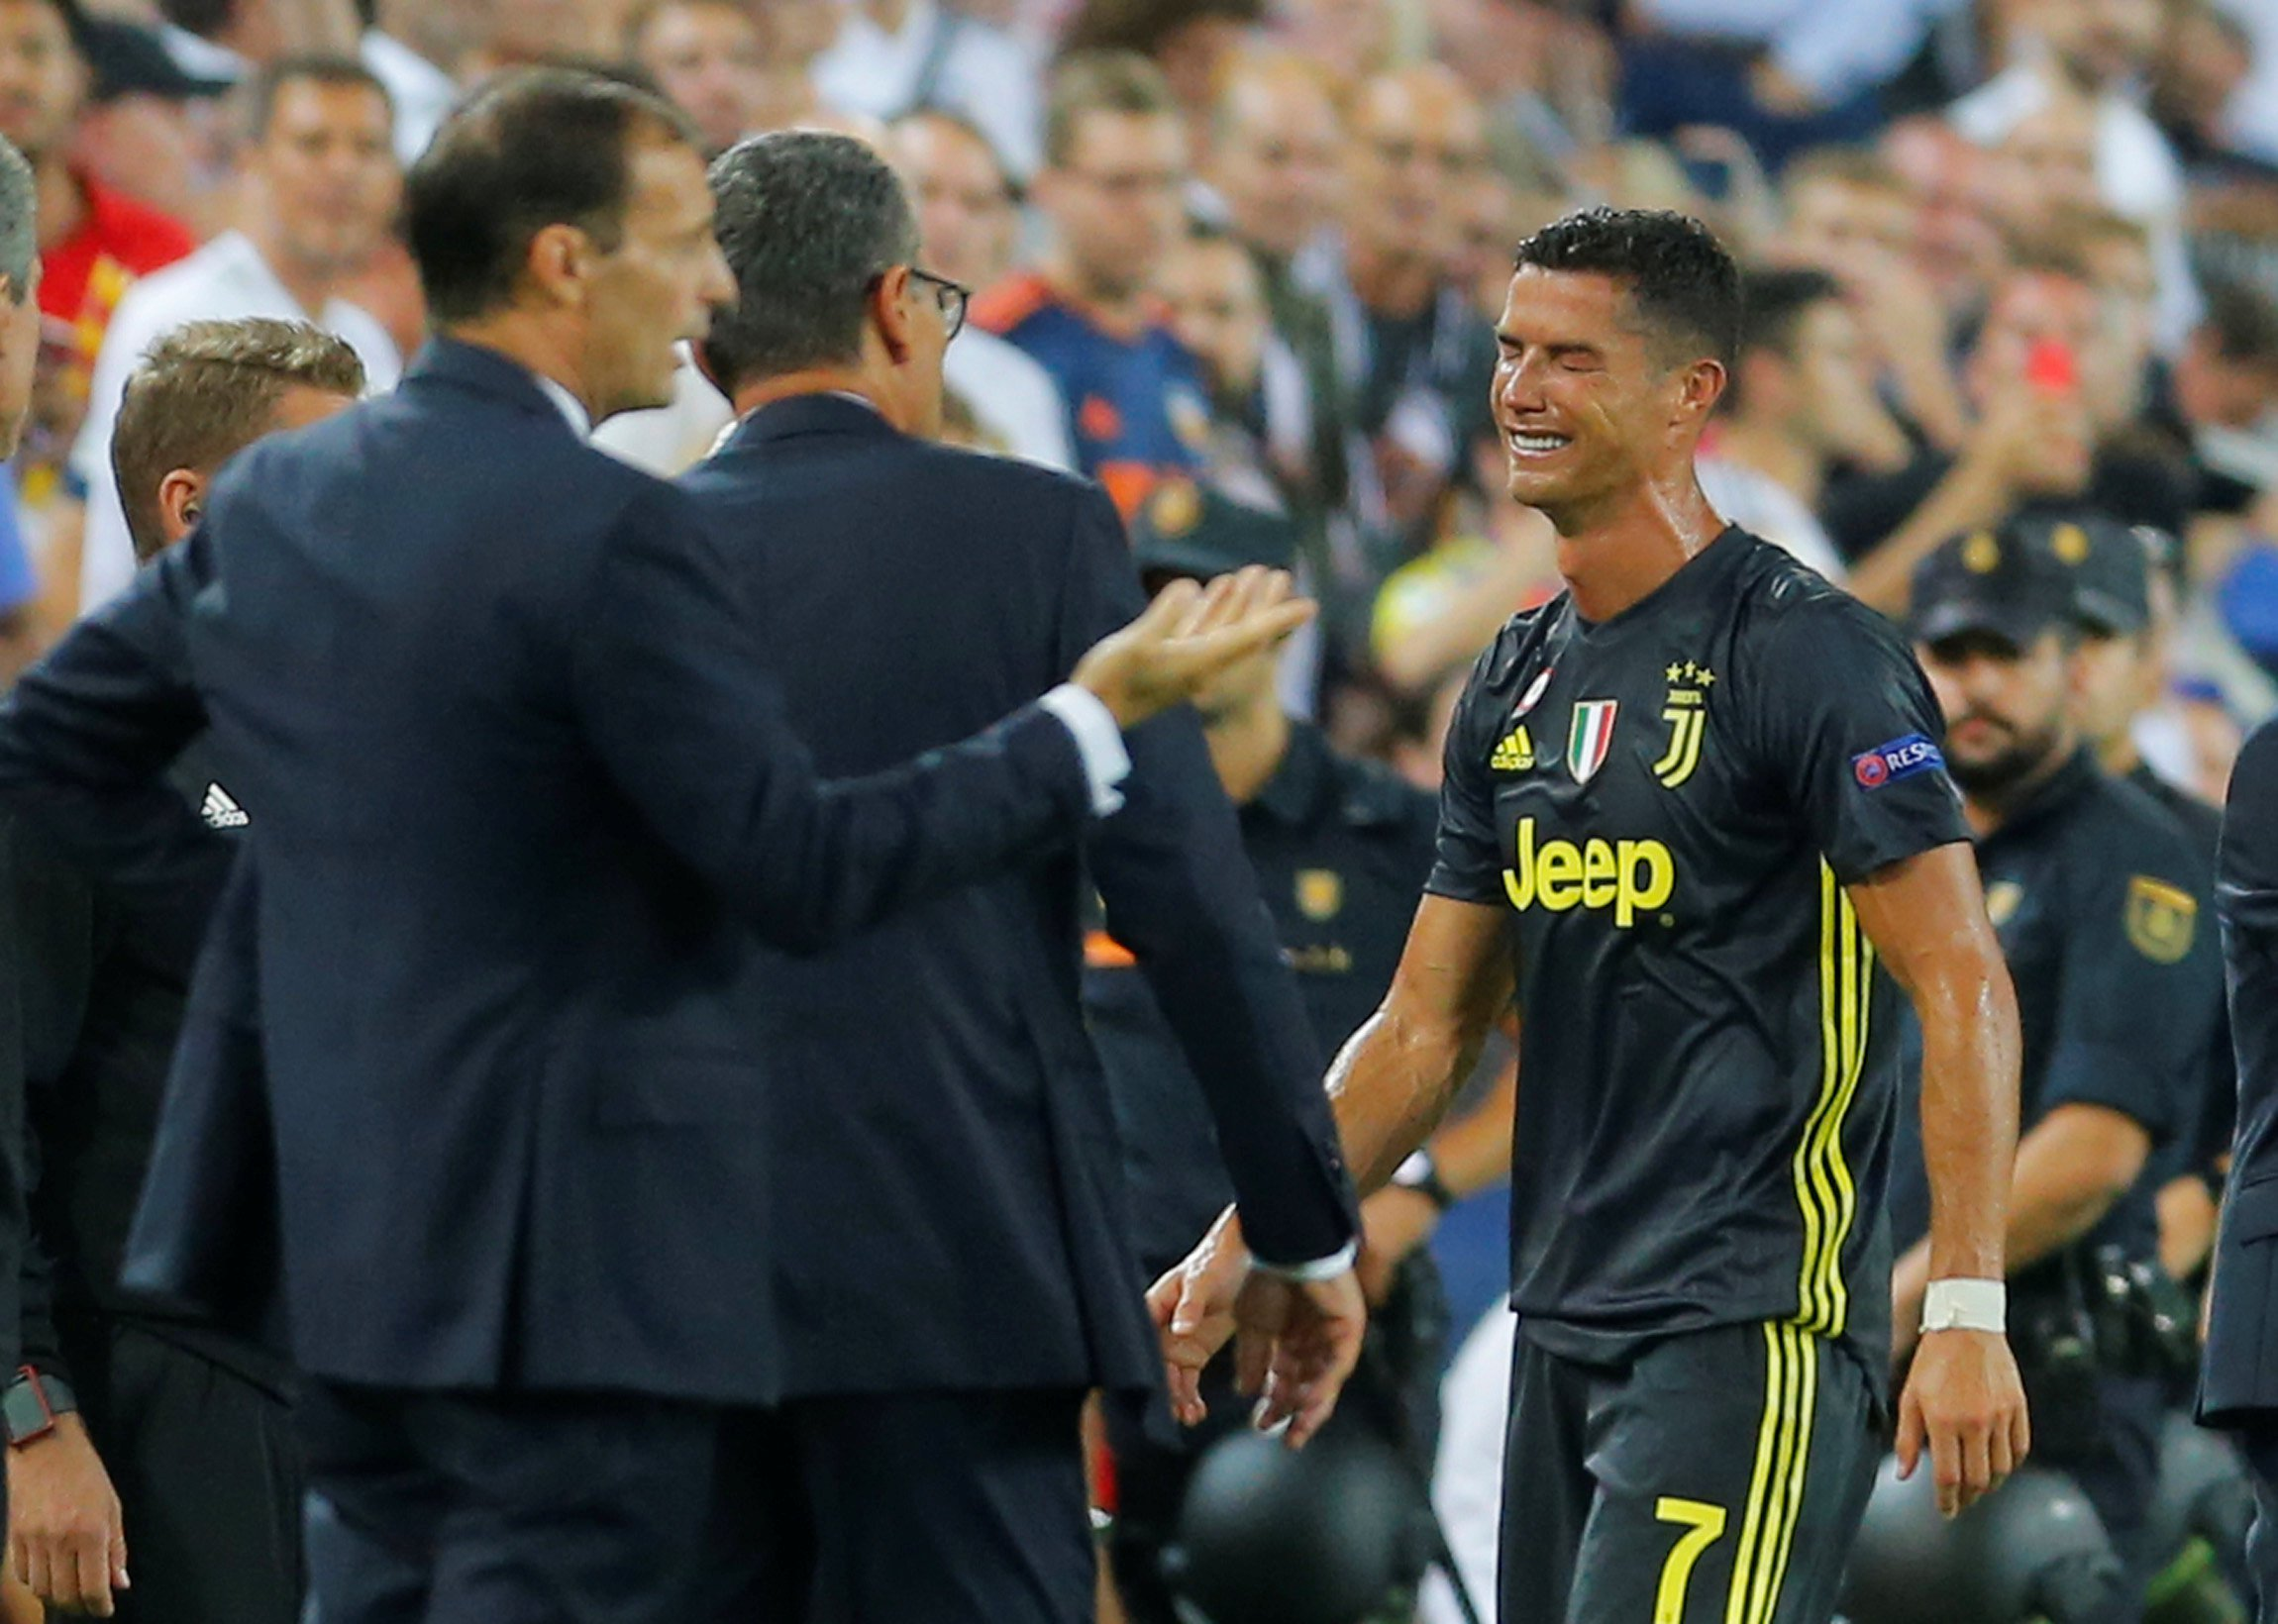 Soccer Football - Champions League - Group Stage - Group H - Valencia v Juventus - Mestalla, Valencia, Spain - September 19, 2018 Juventus' Cristiano Ronaldo reacts after being sent off REUTERS/Heino Kalis